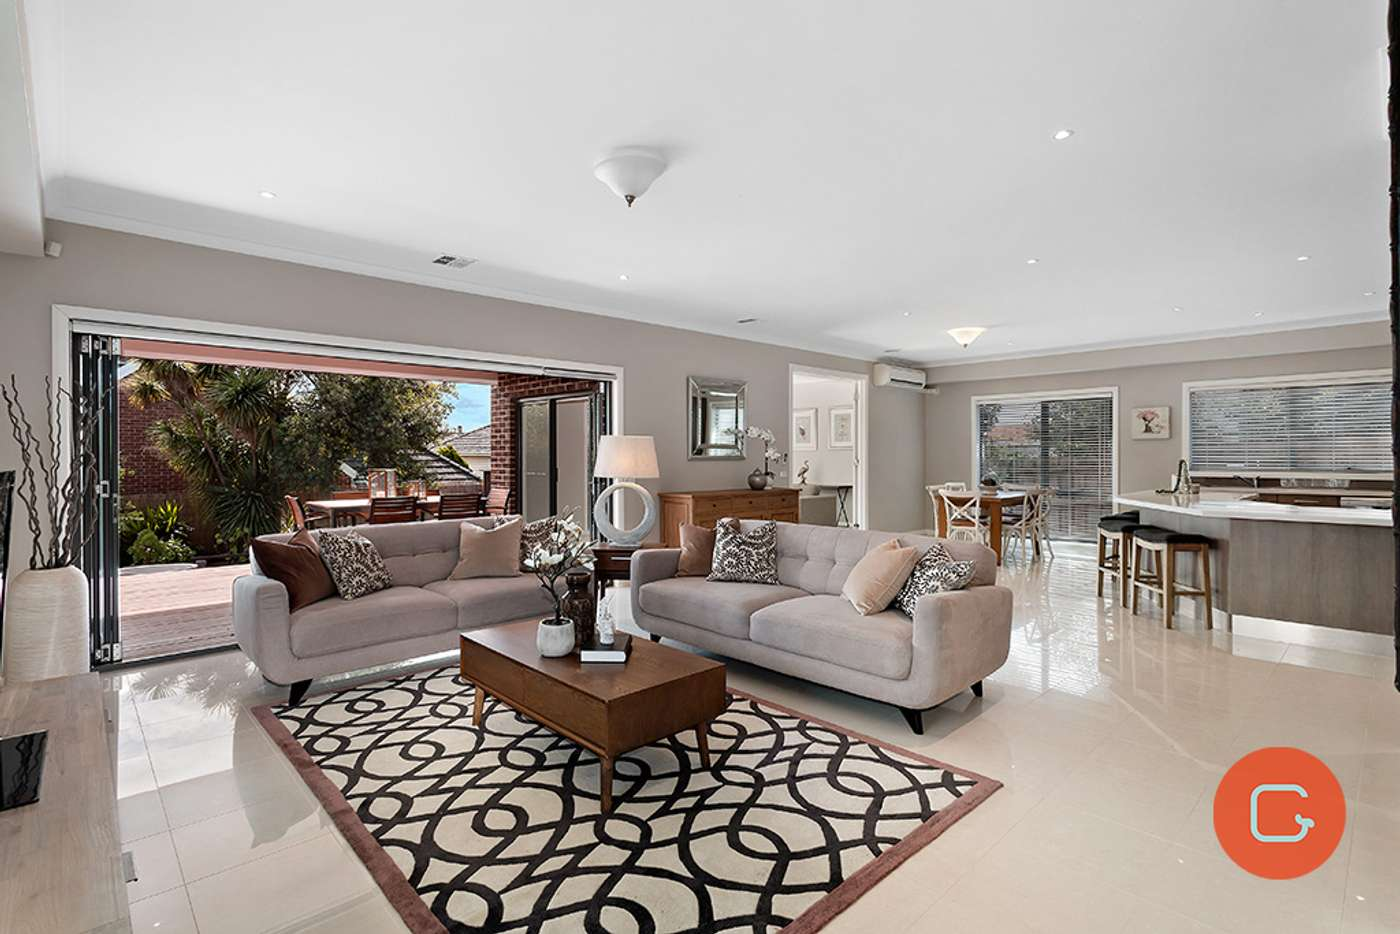 Main view of Homely house listing, 7 Harvie Street, Glen Waverley VIC 3150